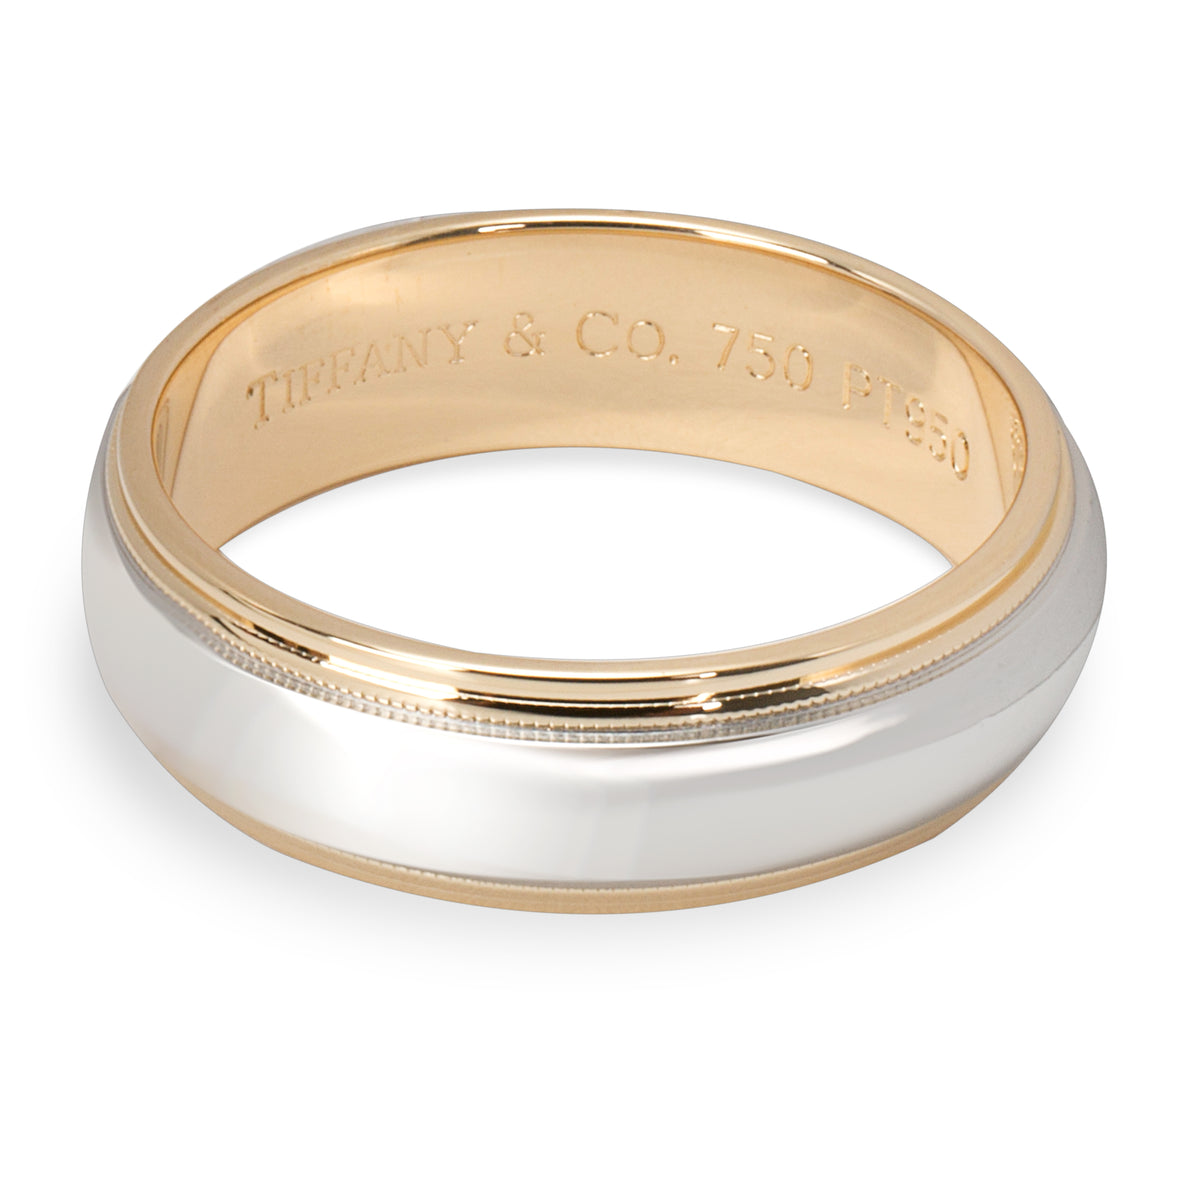 Tiffany & Co. Classic Milgrain Band in Platinum & 18K Yellow Gold